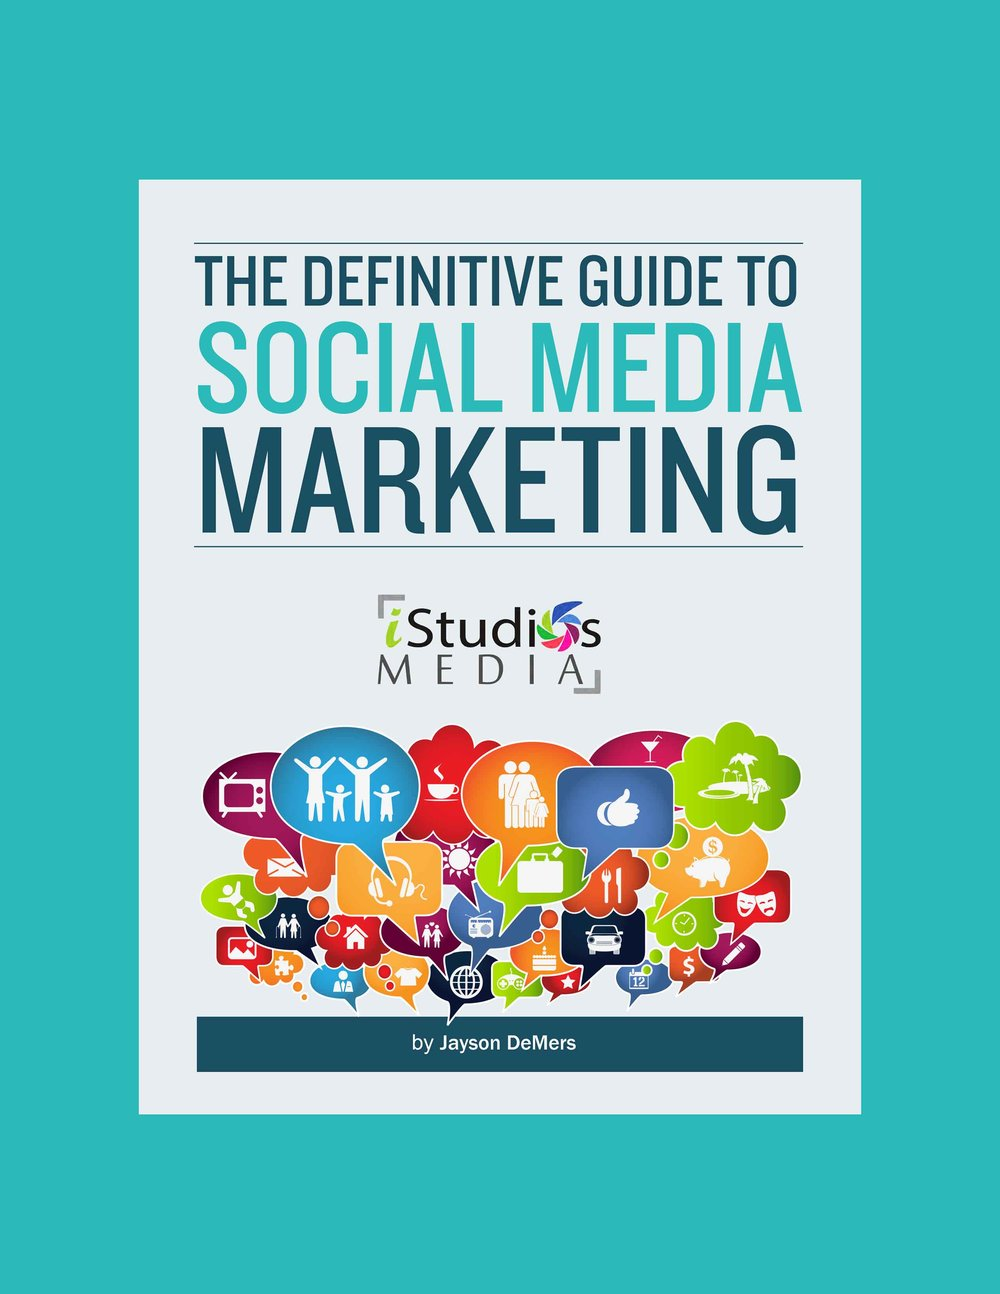 The-Definitive-Guide-to-Social-Media-Marketing-1.jpg